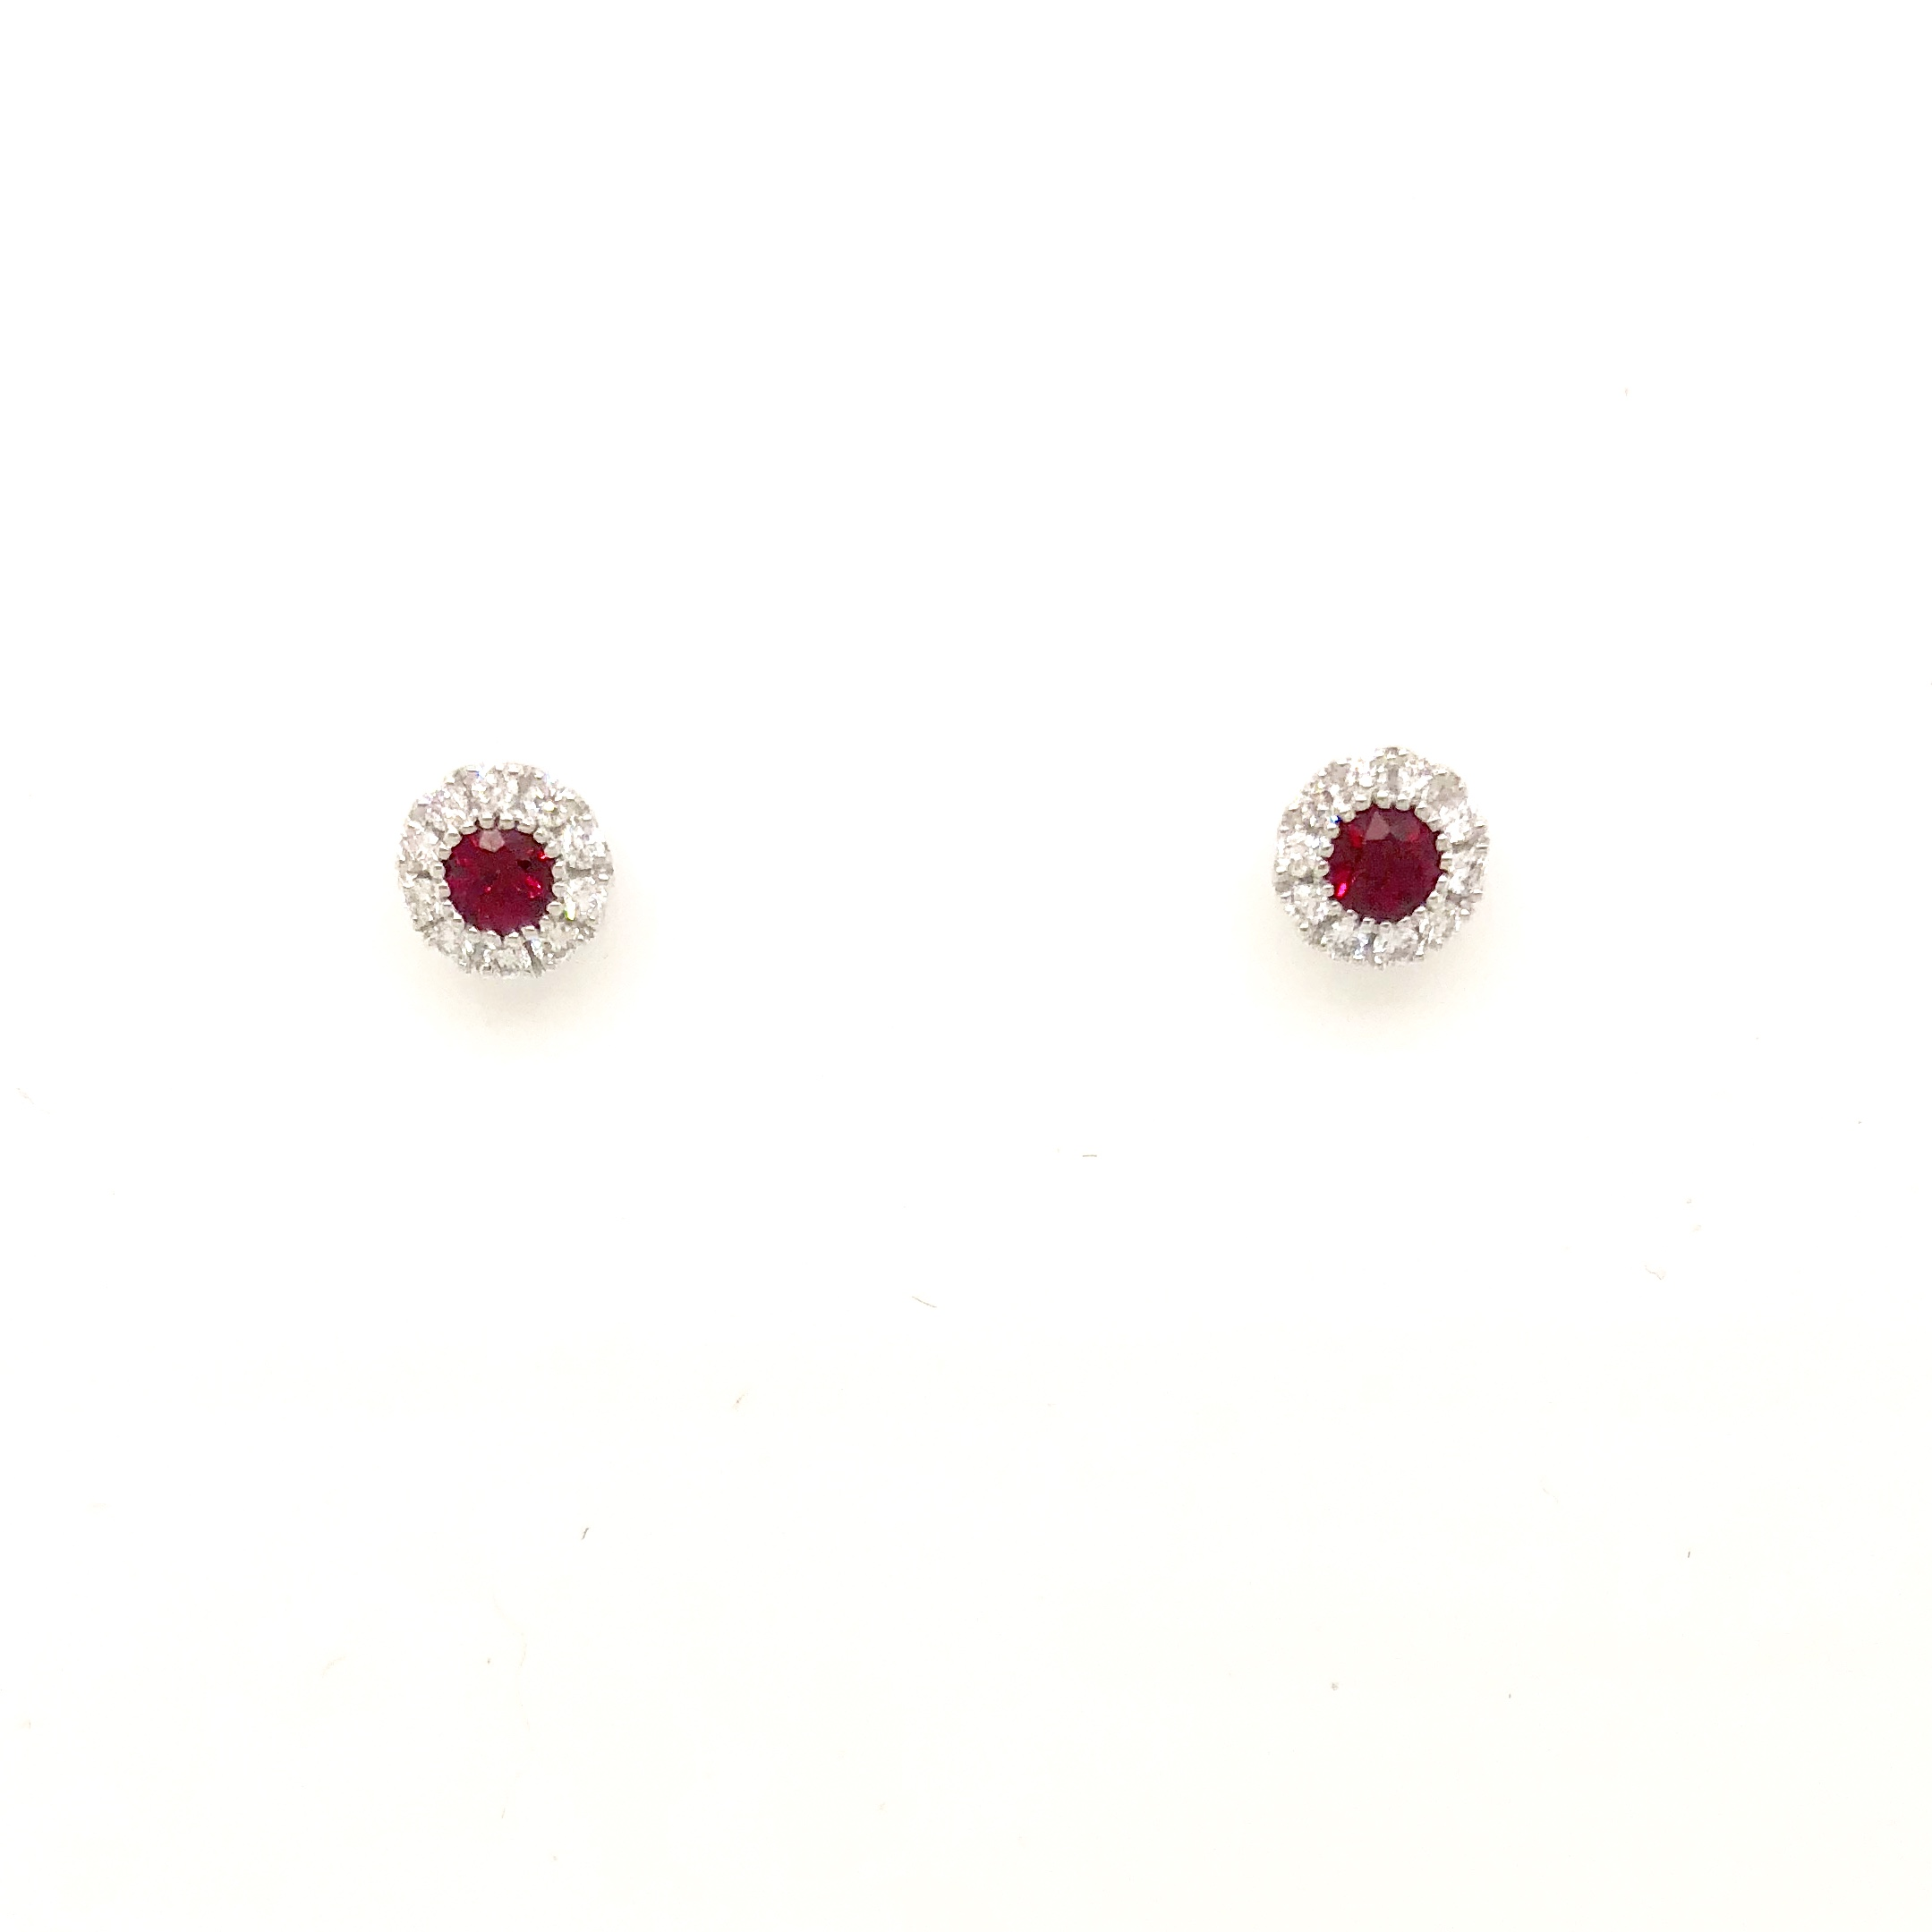 metallic melissa rose kaye ruby lyst earrings gold in women s stud jewelry